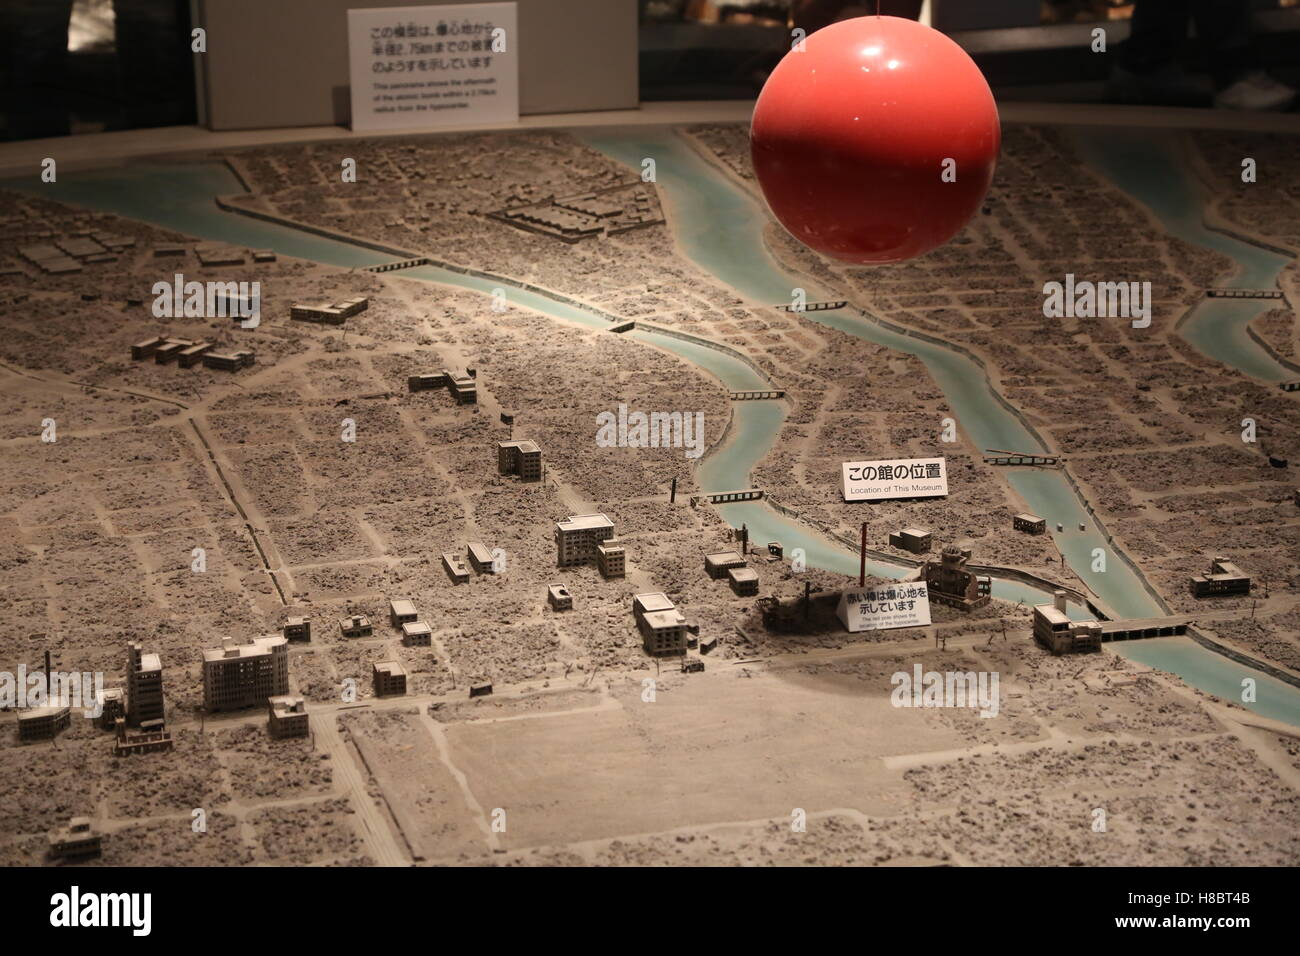 Geography of the point that the nuclear bomb exploded in Hiroshima - Stock Image